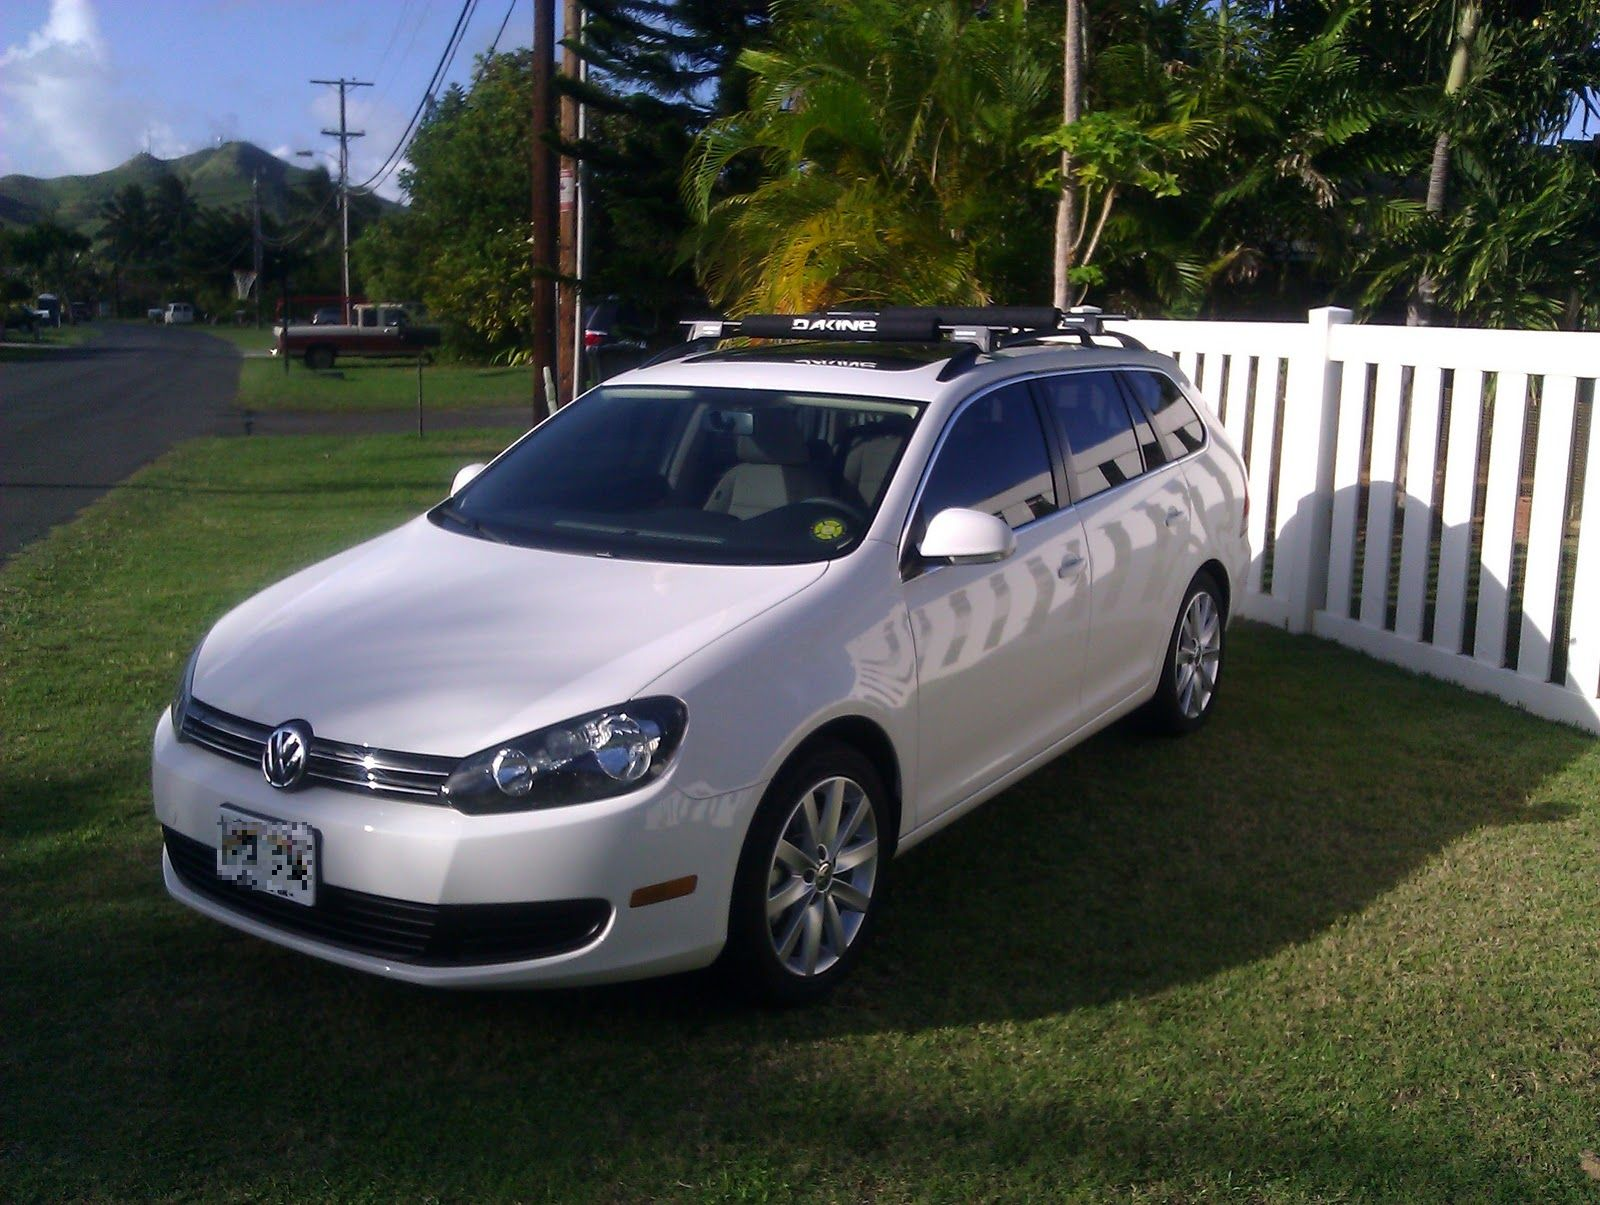 2012 Jetta Roof Rack - Lovequilts